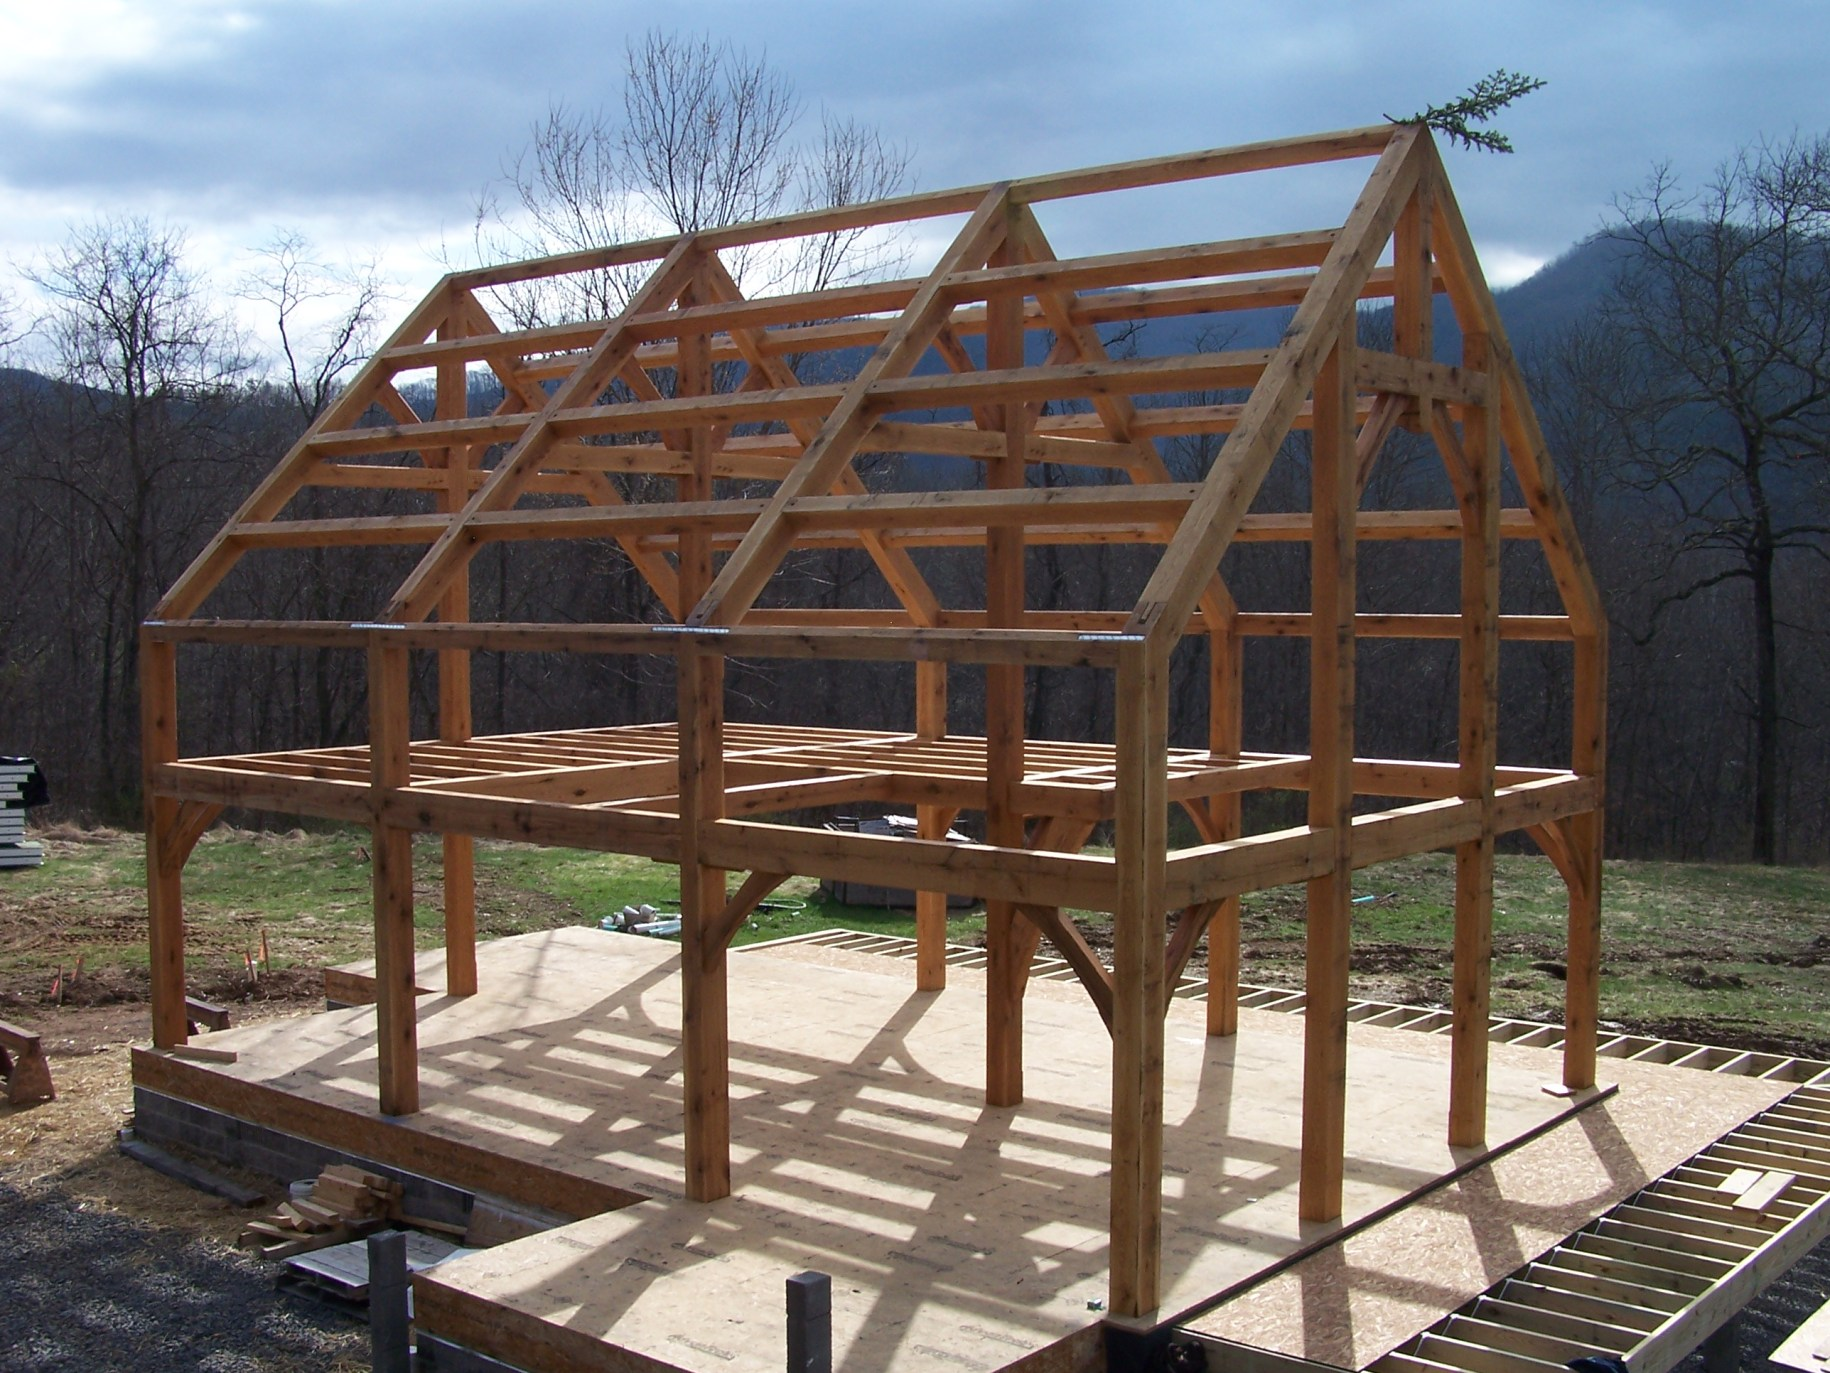 Timber Frame Builder in West Virginia, Virginia, Ohio and North Carolina. Timber Frame Charlottesville, Virginia. Timber Frame Warrenton, Virginia. Timber Frame Loudoun County, Virginia. Timber Frame Fauquier County, Virginia. Timber Frame Fairfax County, Virginia. Timber Frame Builder Shenandoah Valley, Virginia. Timber Frame Builder Blue Ridge Mountains. Timber Frame Greenbrier County, West Virginia. Timber Frame Lewisburg, West Virginia. Timber Frame Charleston, West Virginia. Timber Frame Builder Fayetteville, West Virginia. Timber Frame Builder New River Gorge, West Virginia.